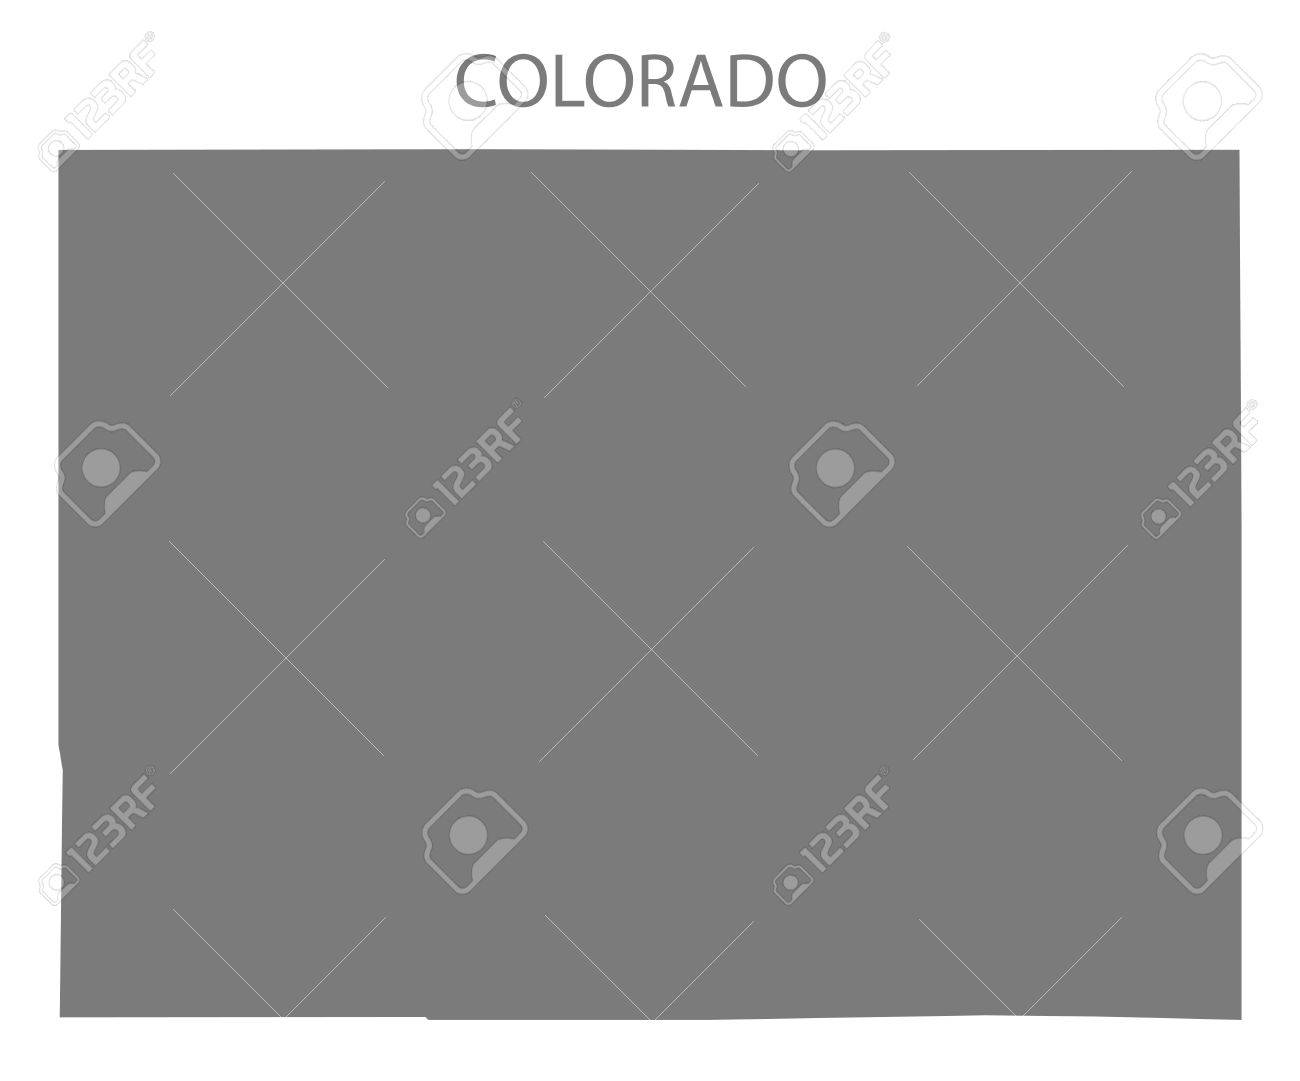 Large Detailed Map Of Colorado With Cities And Roads Georgia USA - Colorado usa map